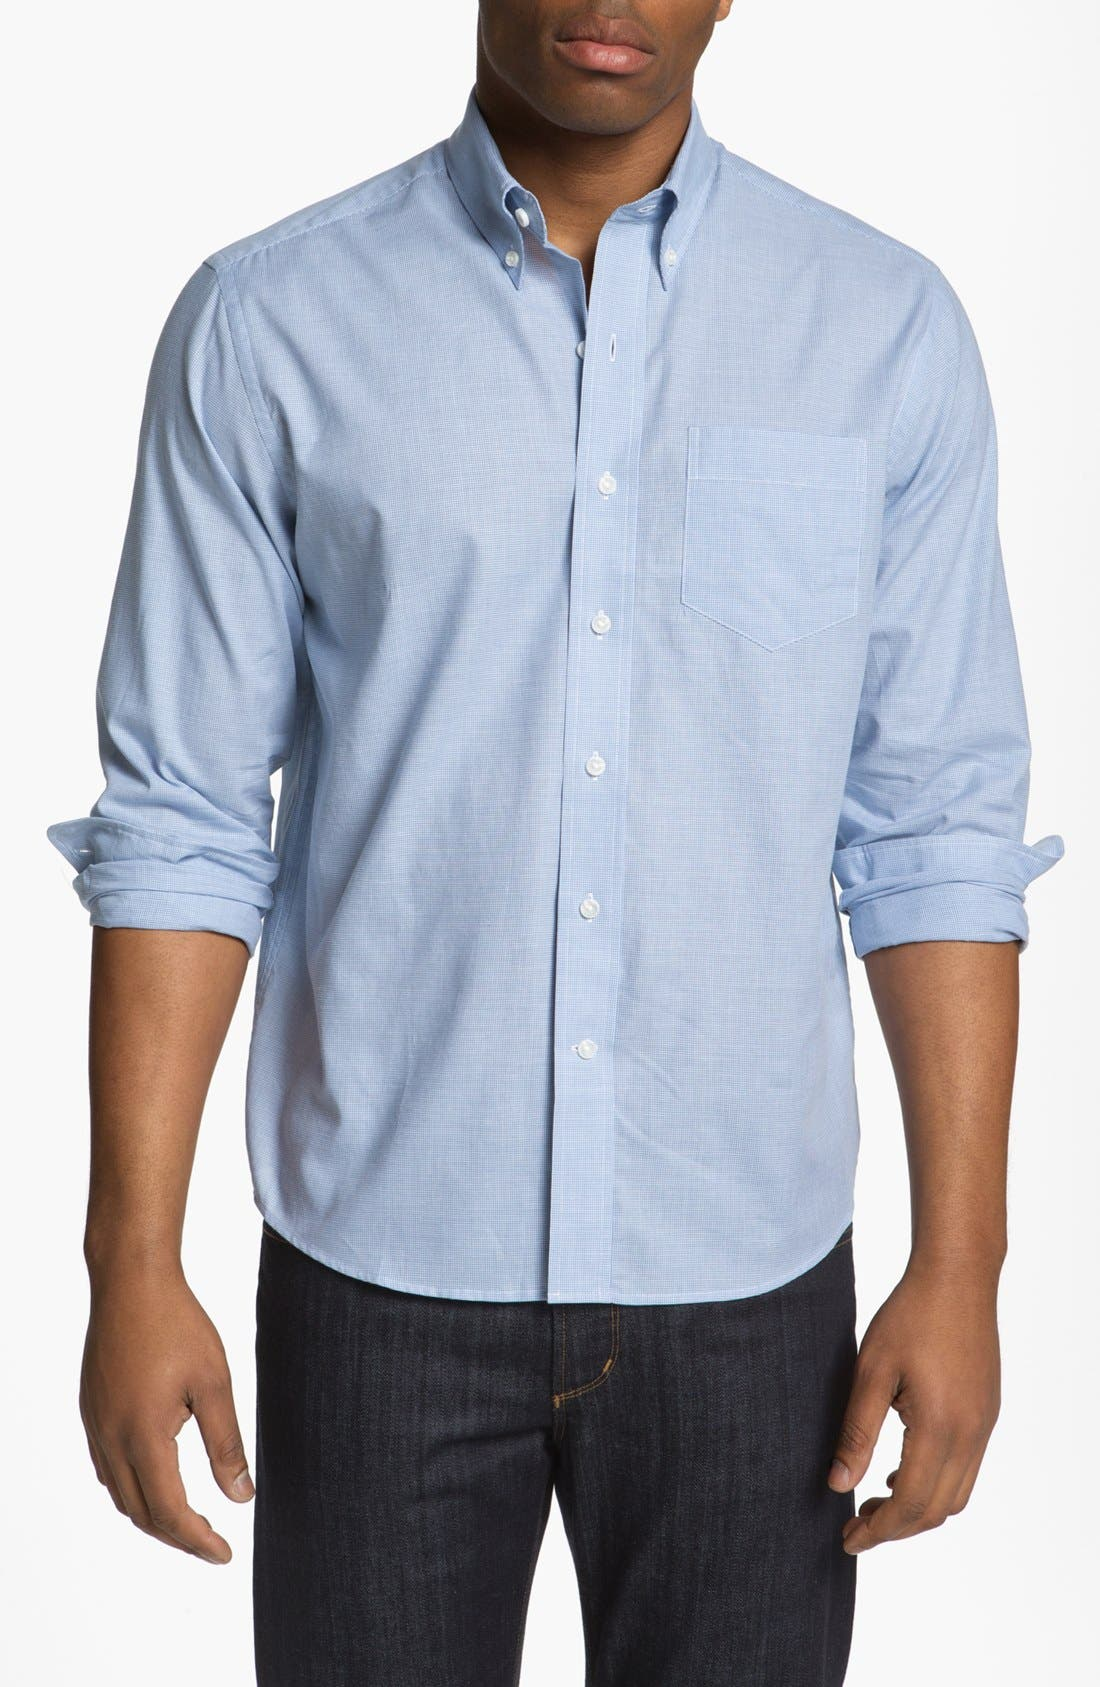 Main Image - Cutter & Buck 'Lasell' Regular Fit Sport Shirt (Big & Tall)